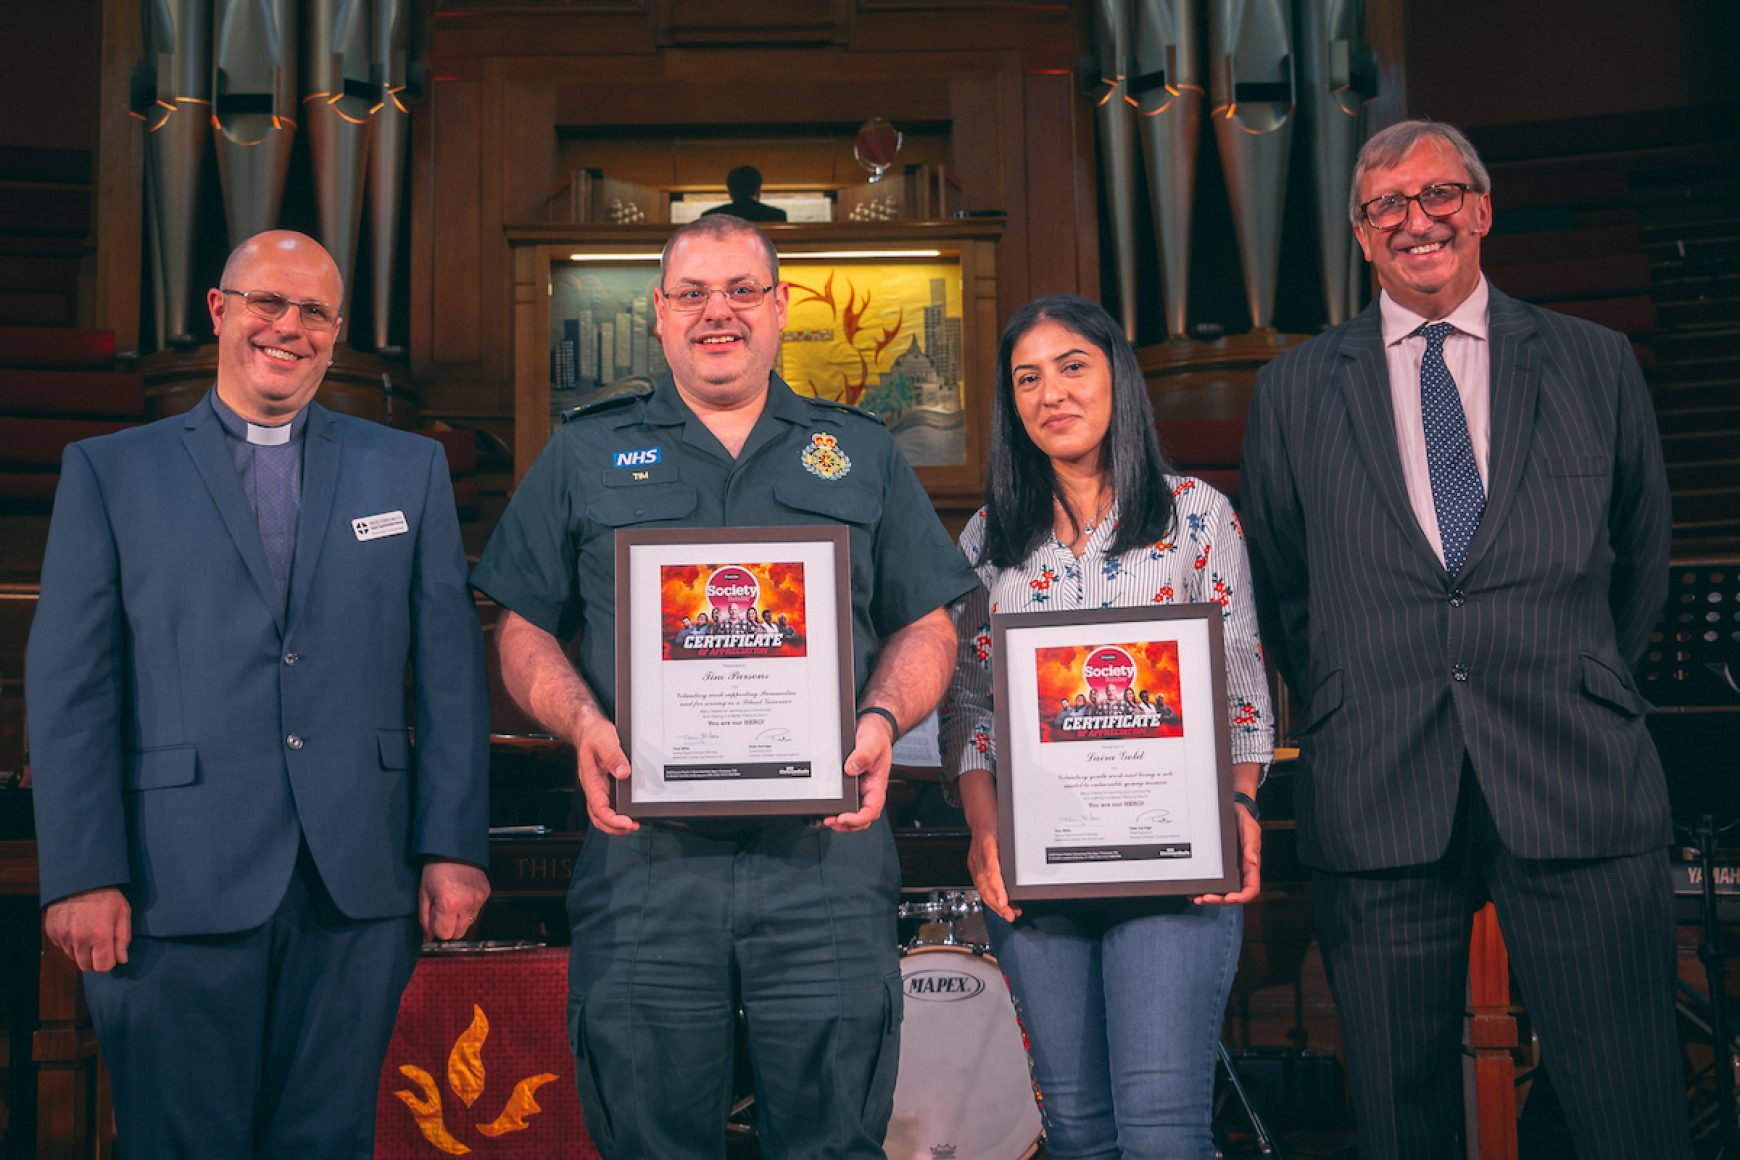 LOCAL HEROES HONOURED AT SOCIETY SUNDAY SERVICE